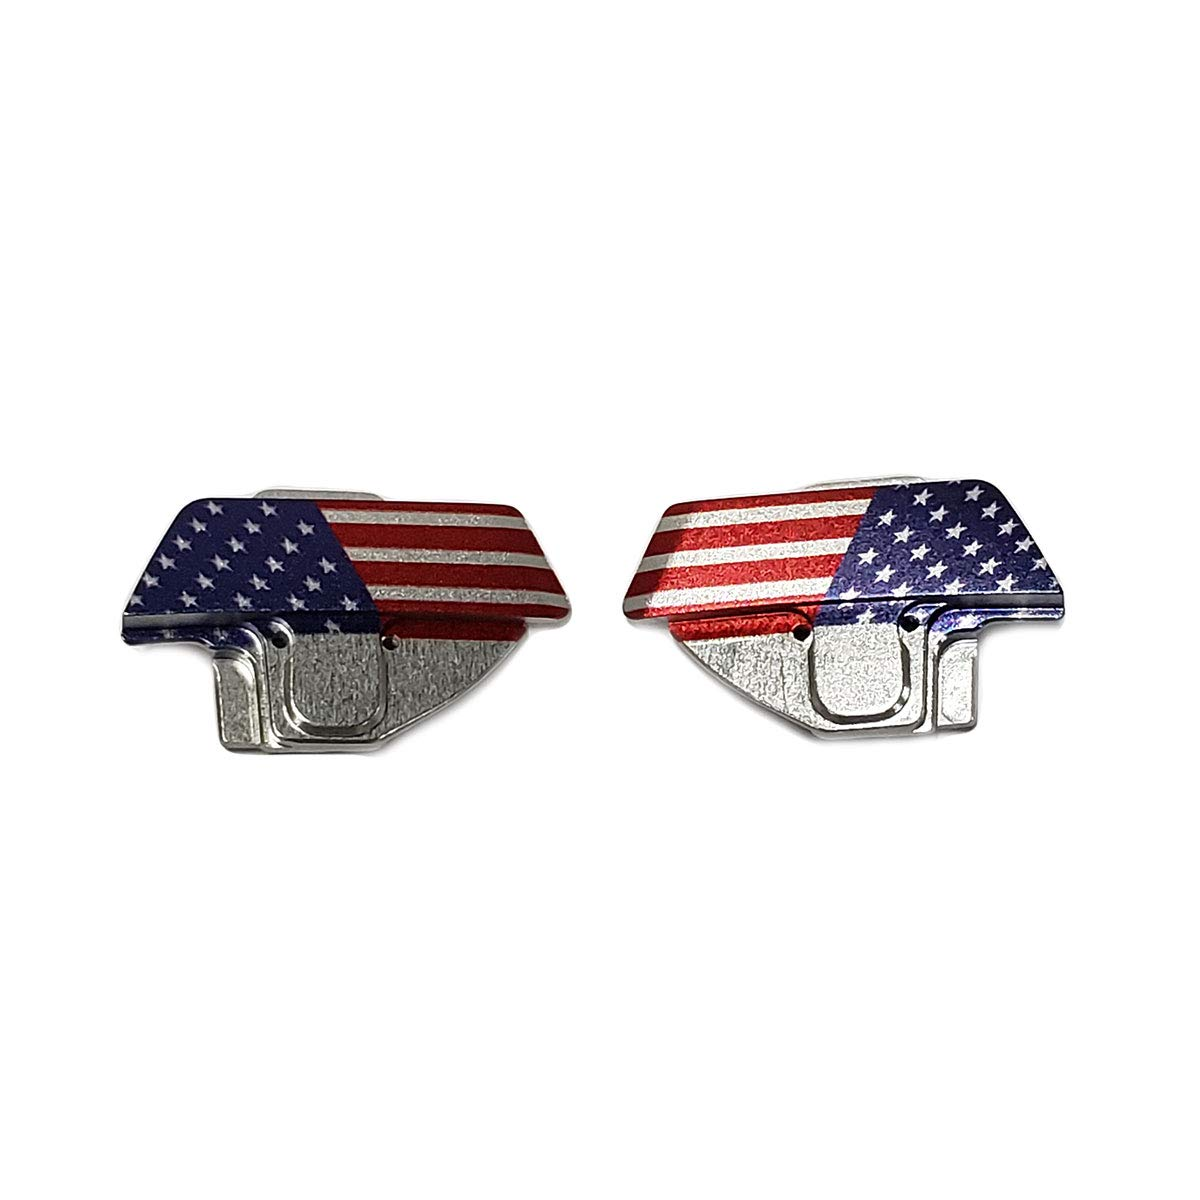 Planet Eclipse Eye Cover Kit - CS2 - USA Flag by Planet Eclipse